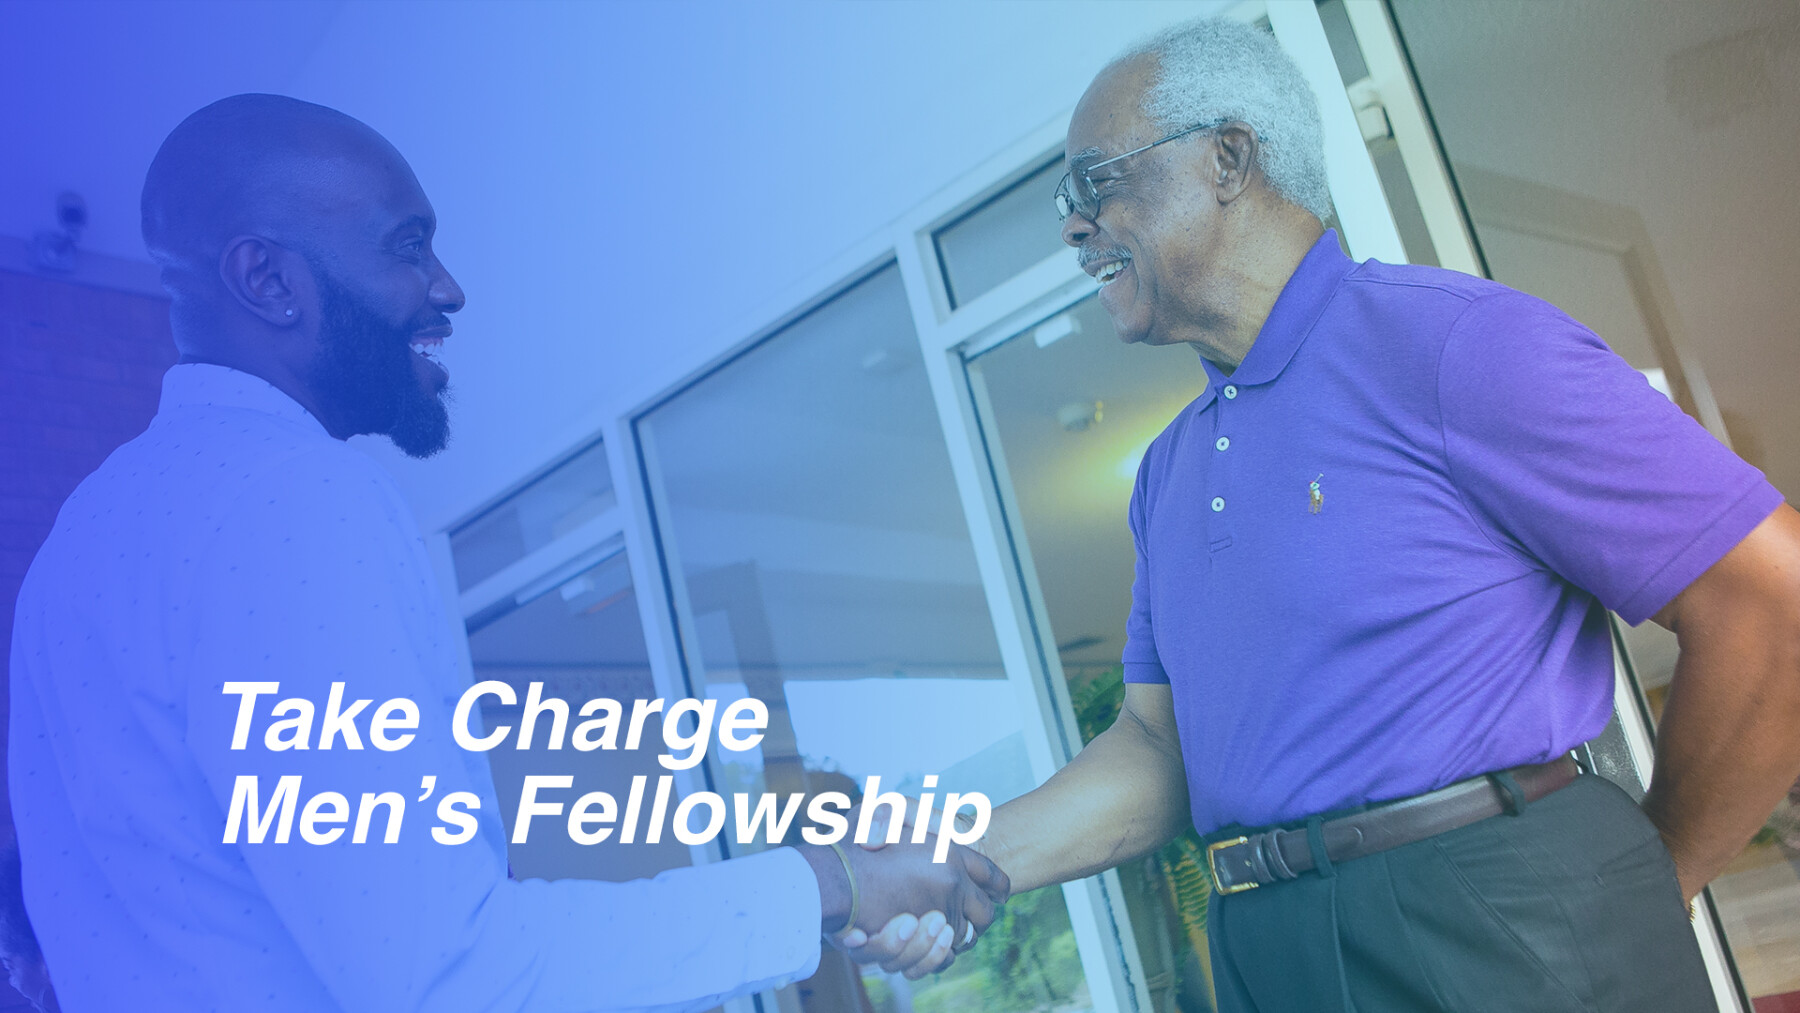 Take Charge: Men's Fellowship